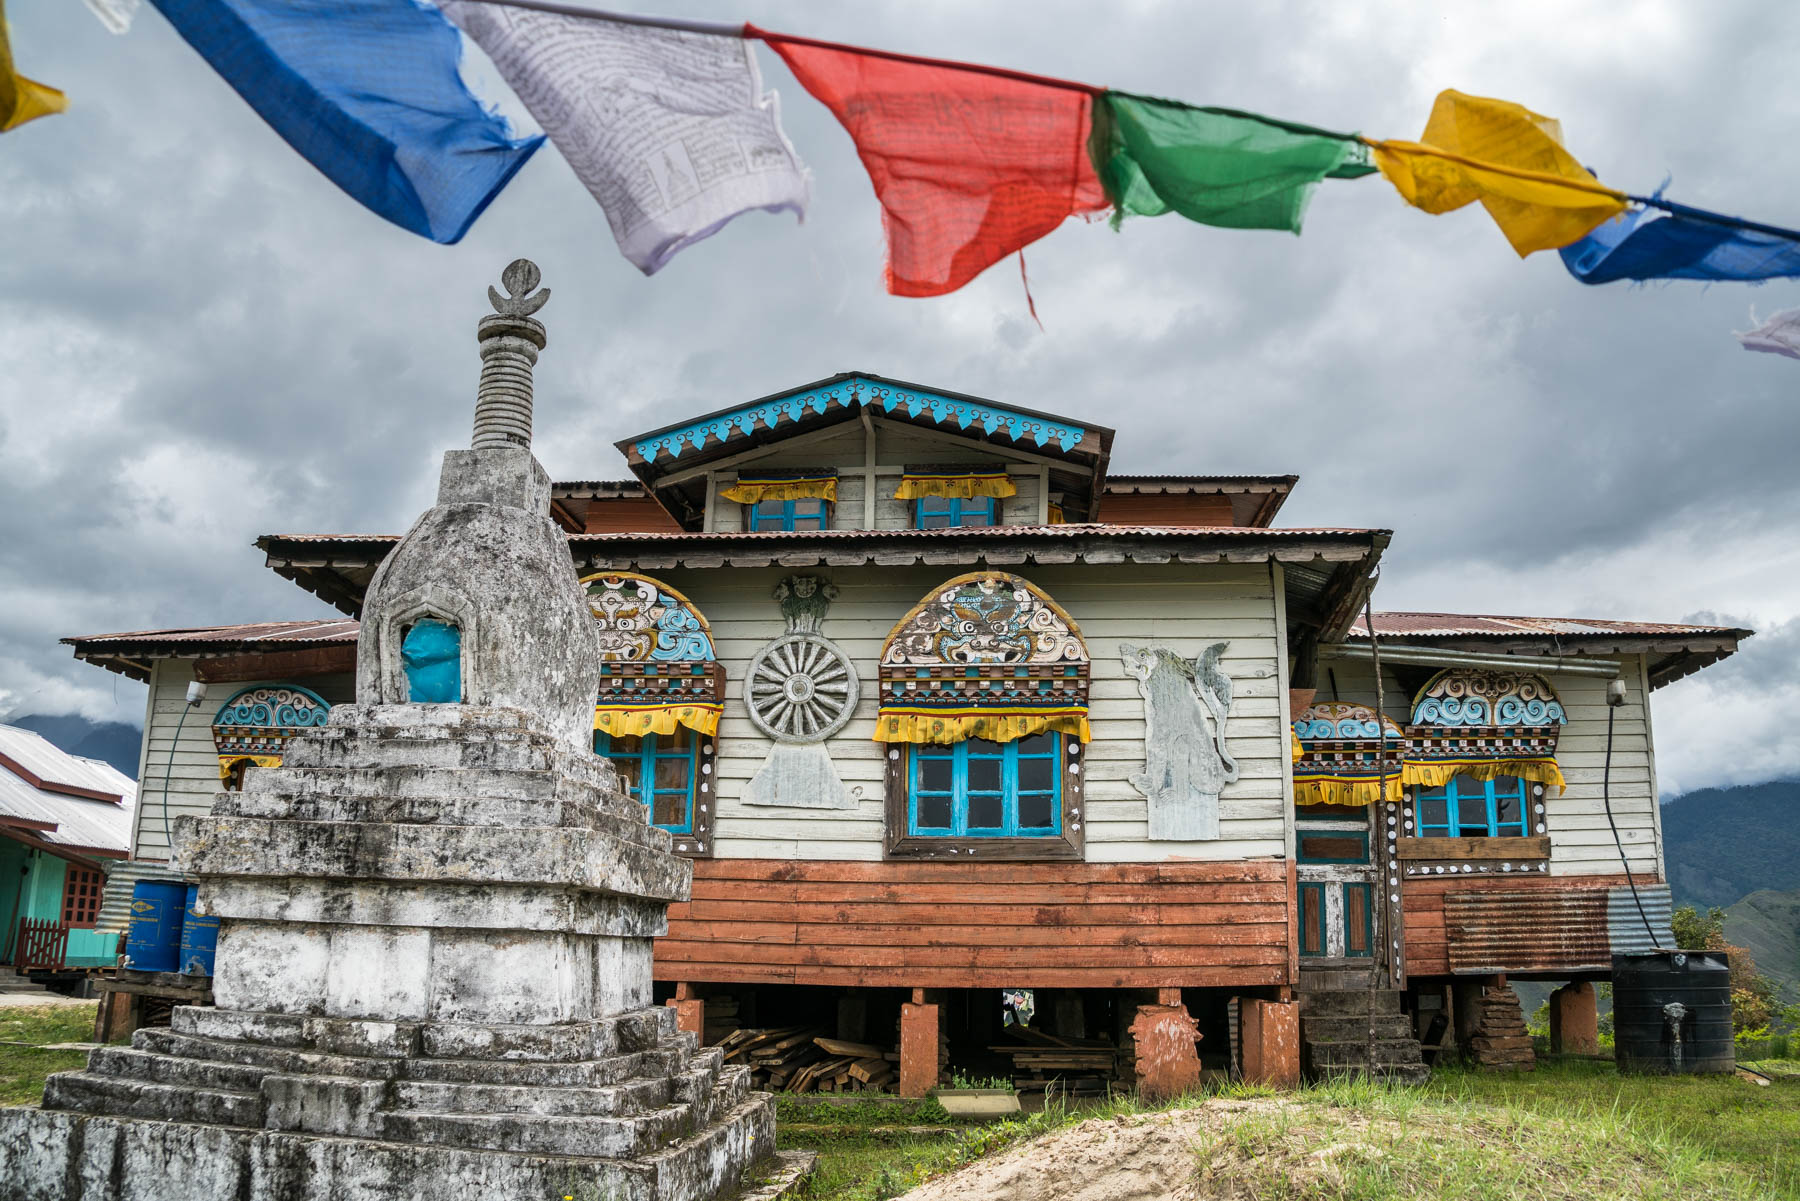 Backpacking in Arunachal Pradesh travel guide - Homestay hosts in Mechuka - Old Gompa in Mechuka - Lost With Purpose